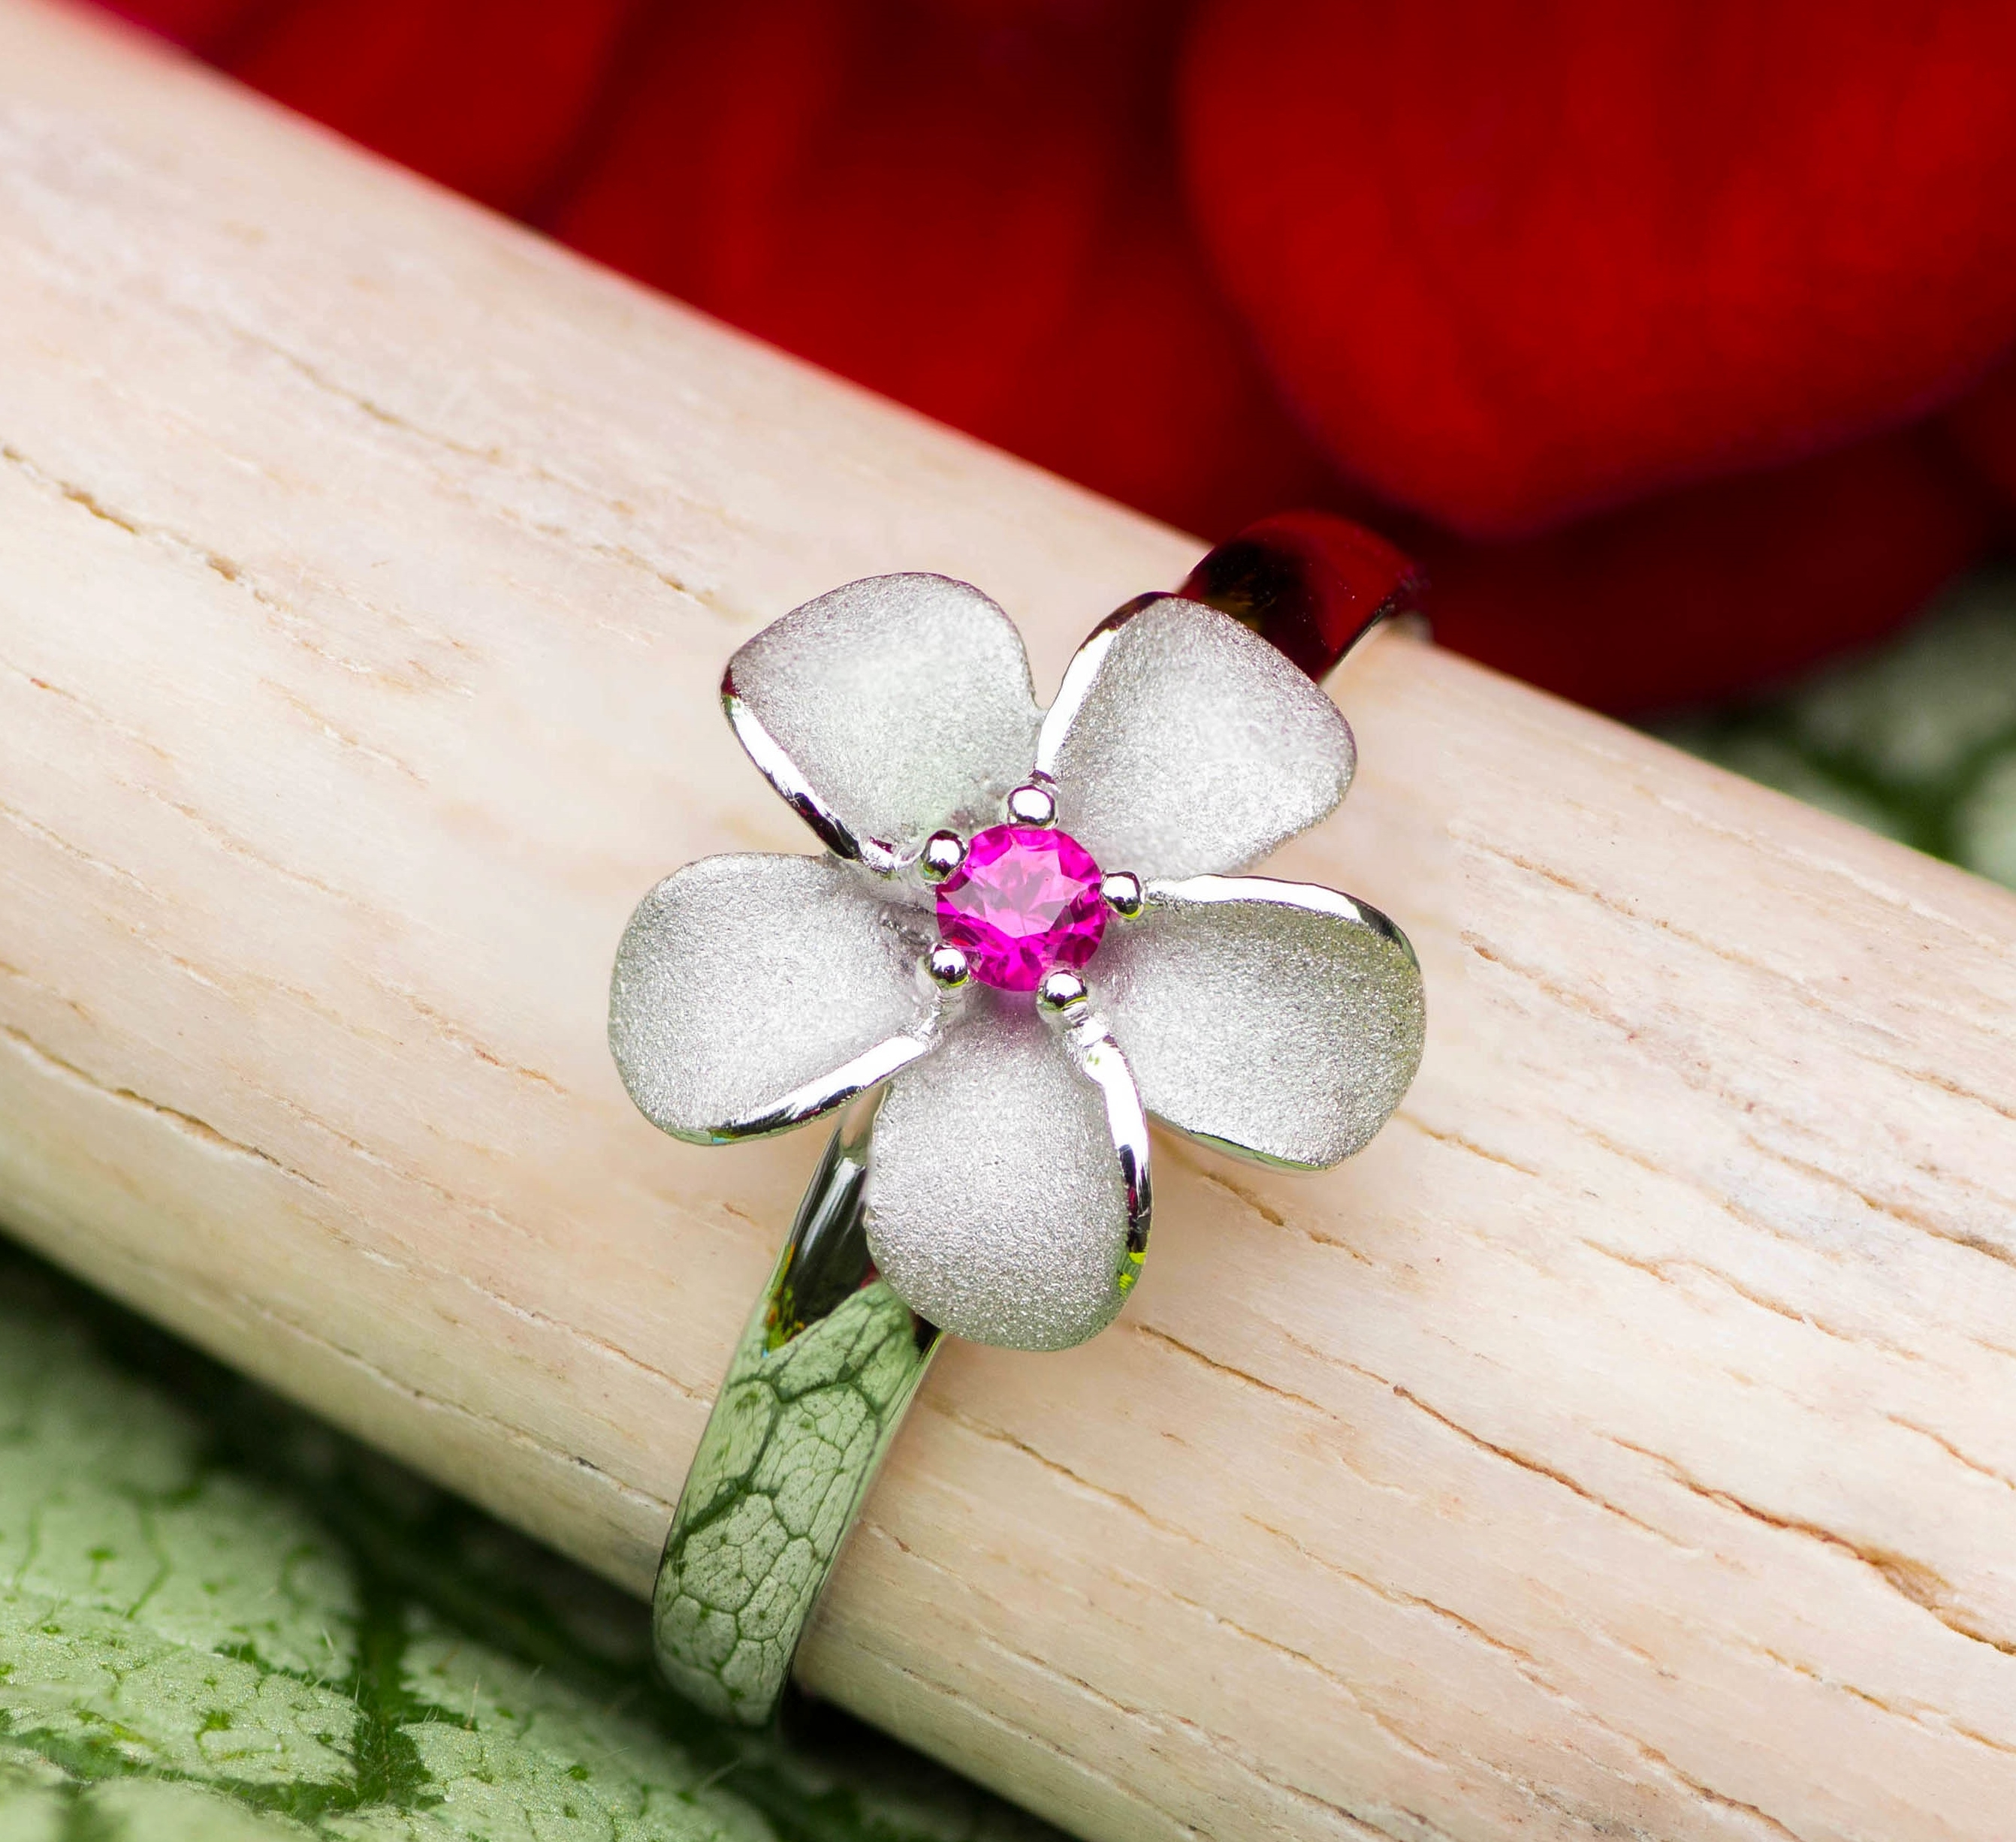 Forget Me Not Flower Ring in White Gold with a Ruby center